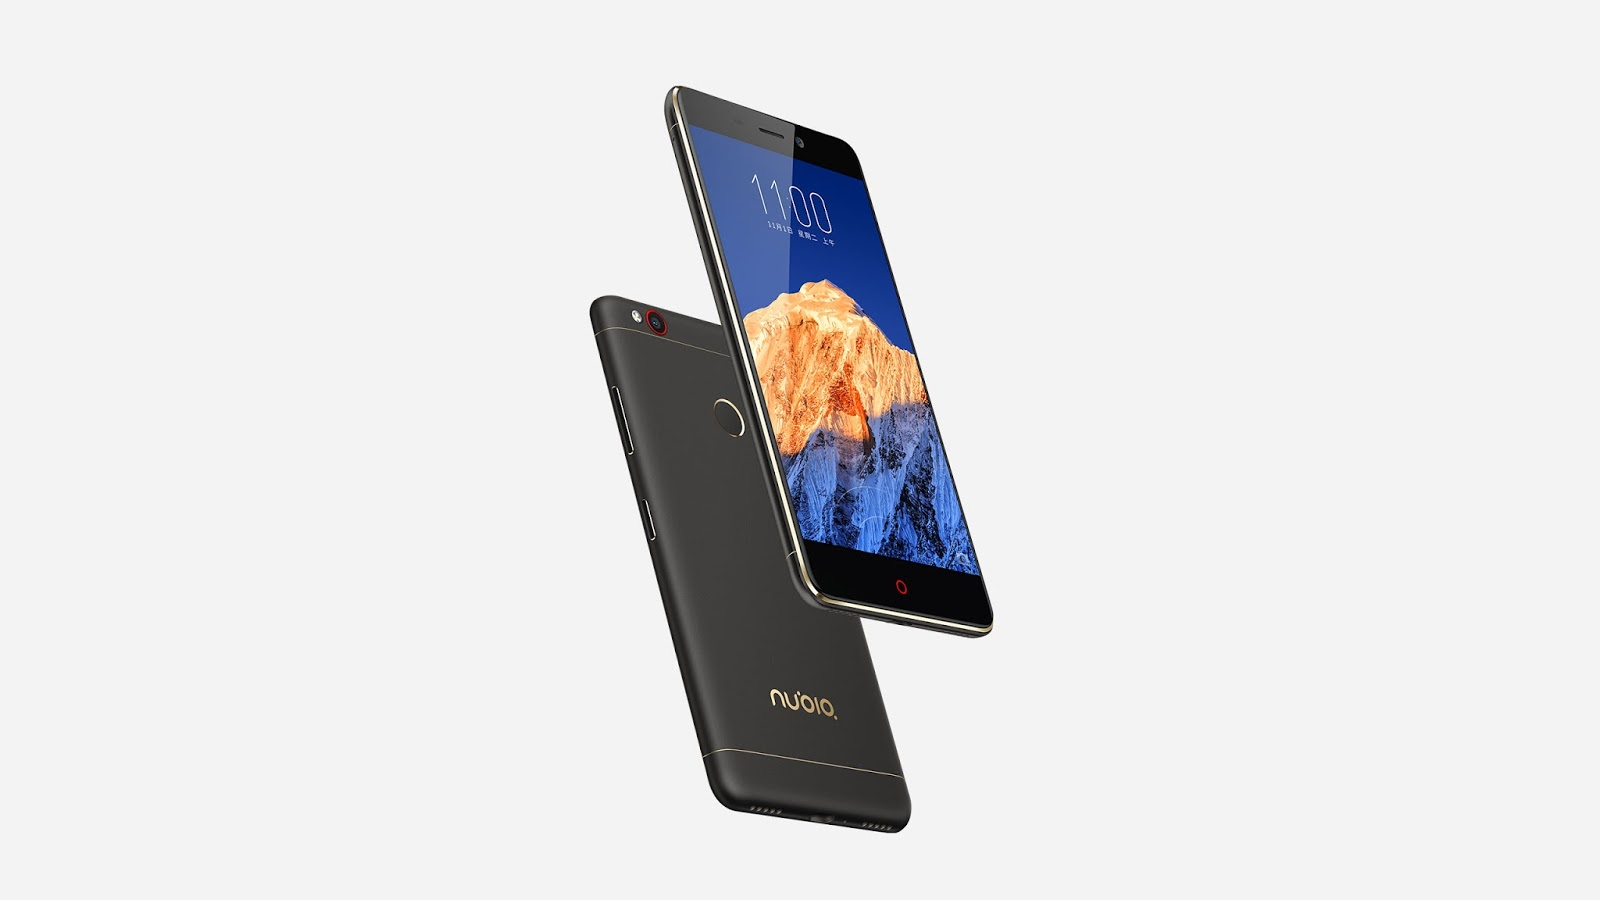 zte nubia z11 gold actually sells two